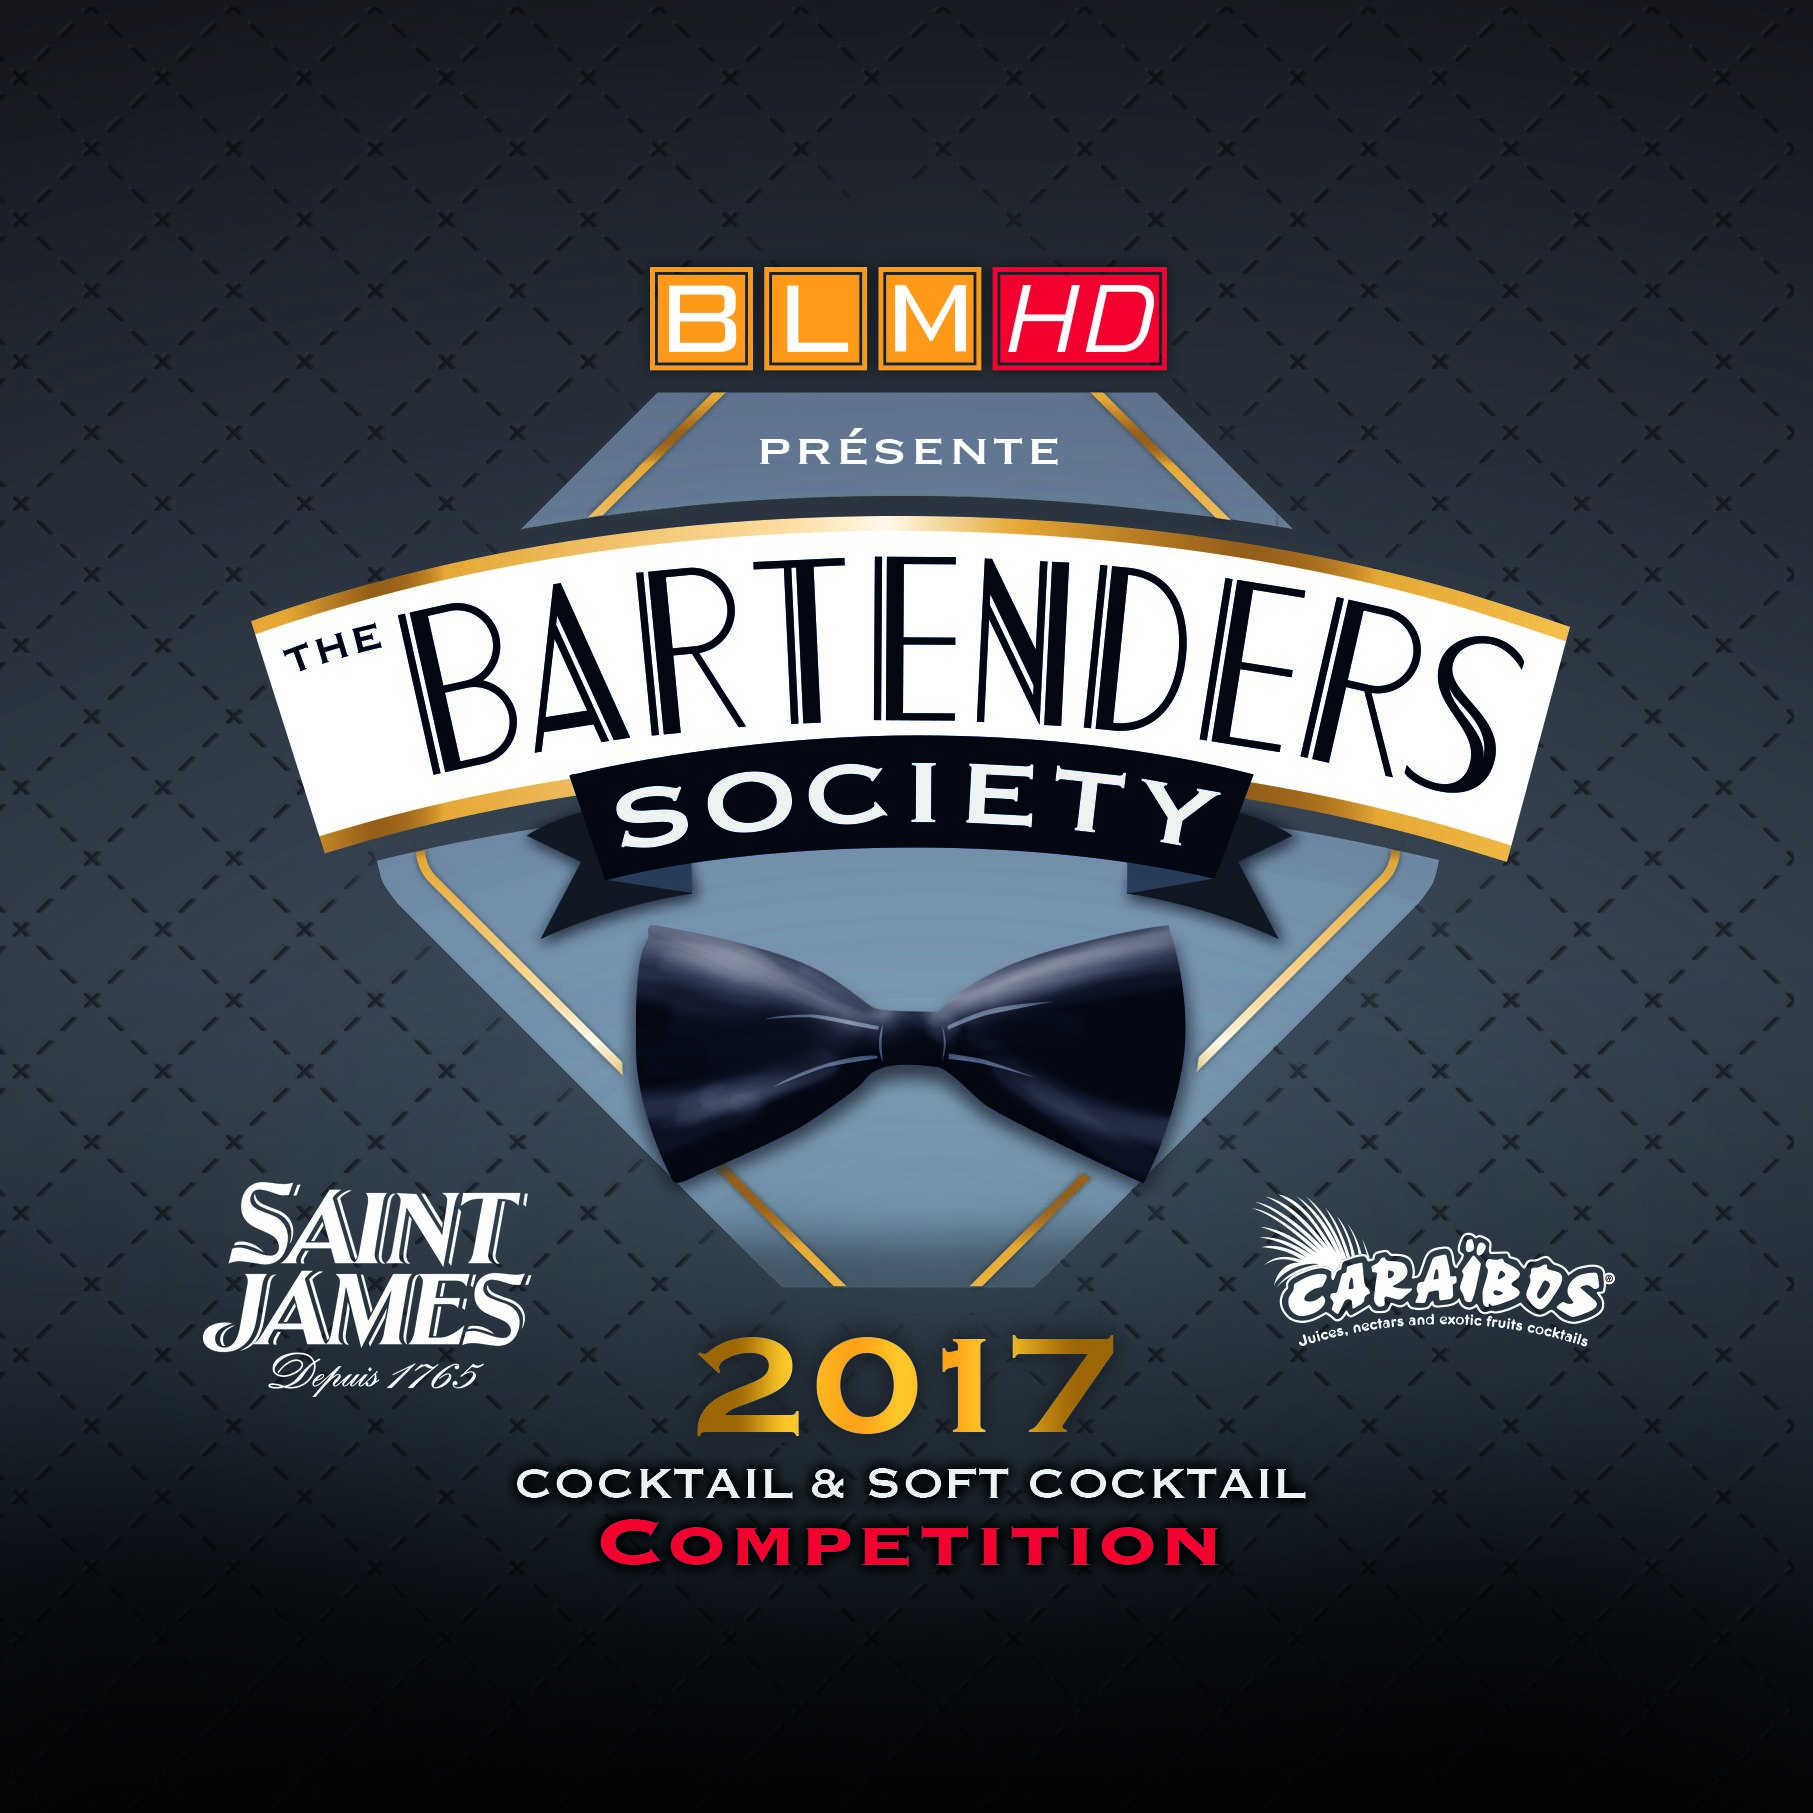 The Bartenders Society 2017 : les inscriptions sont ouvertes